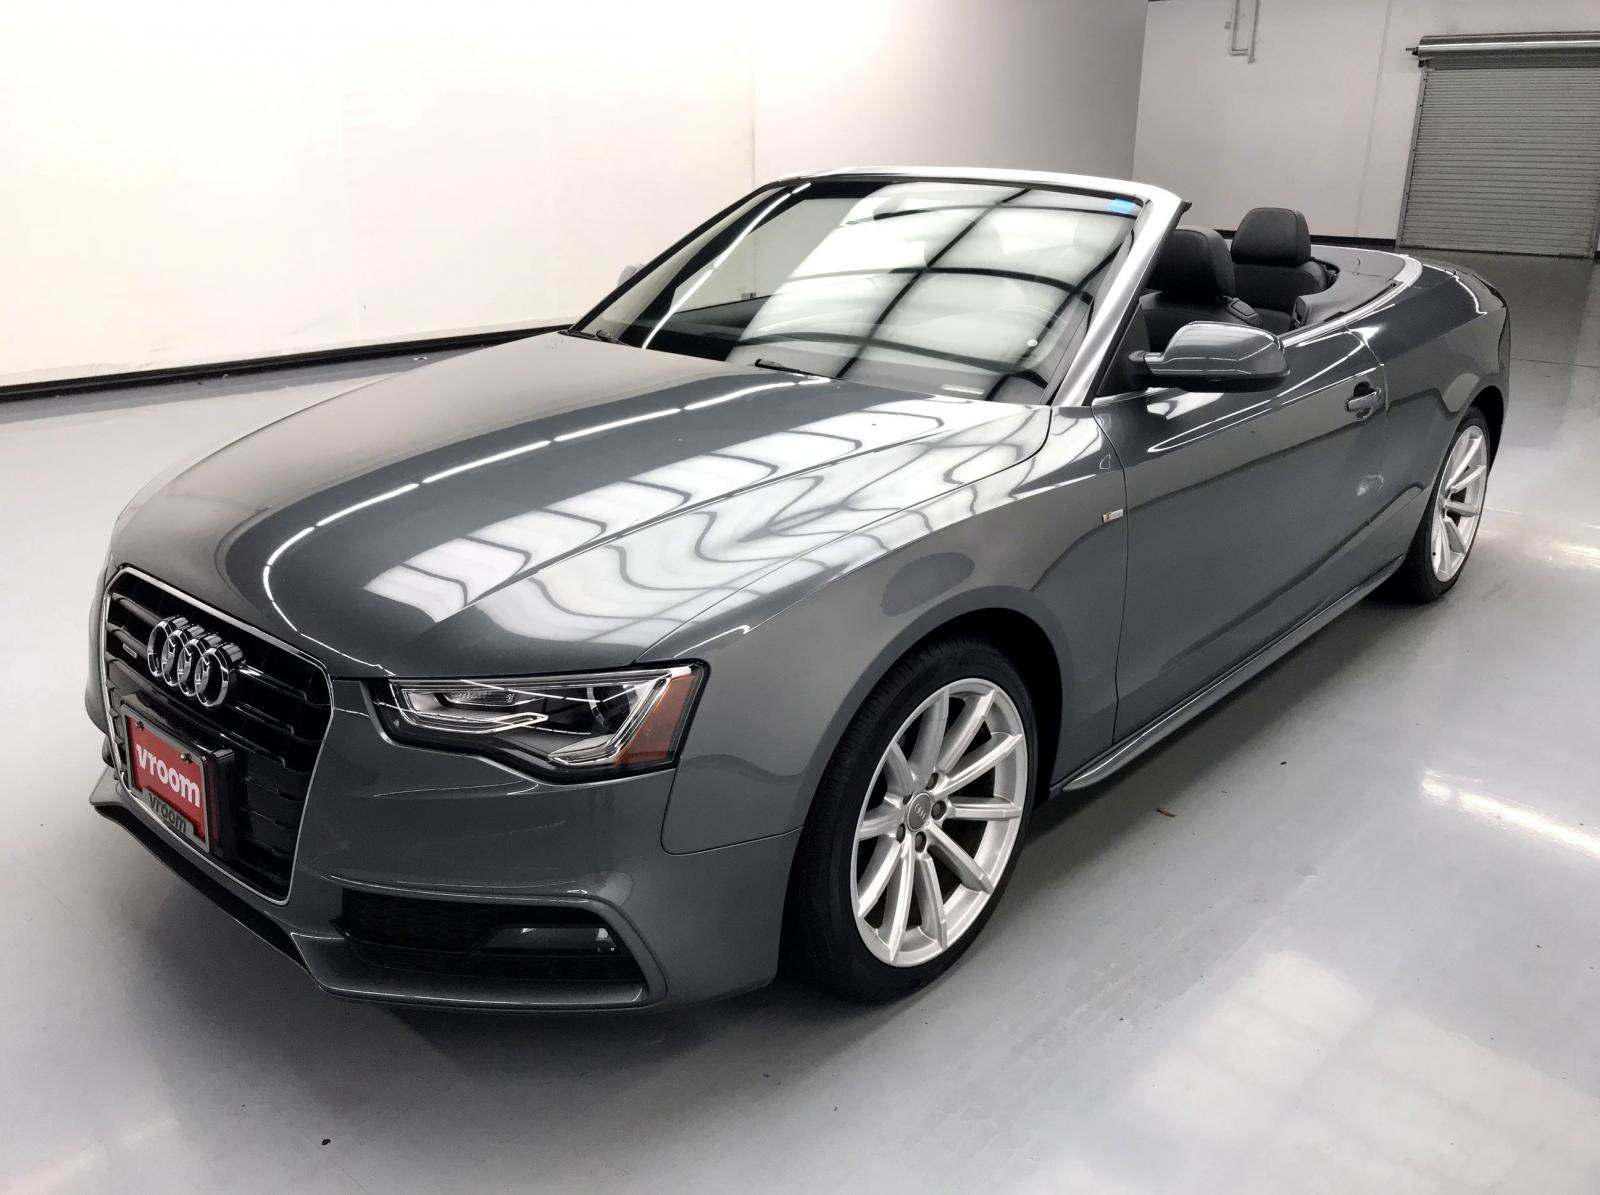 used Audi A5 2016 vin: WAUD2AFH4GN001466